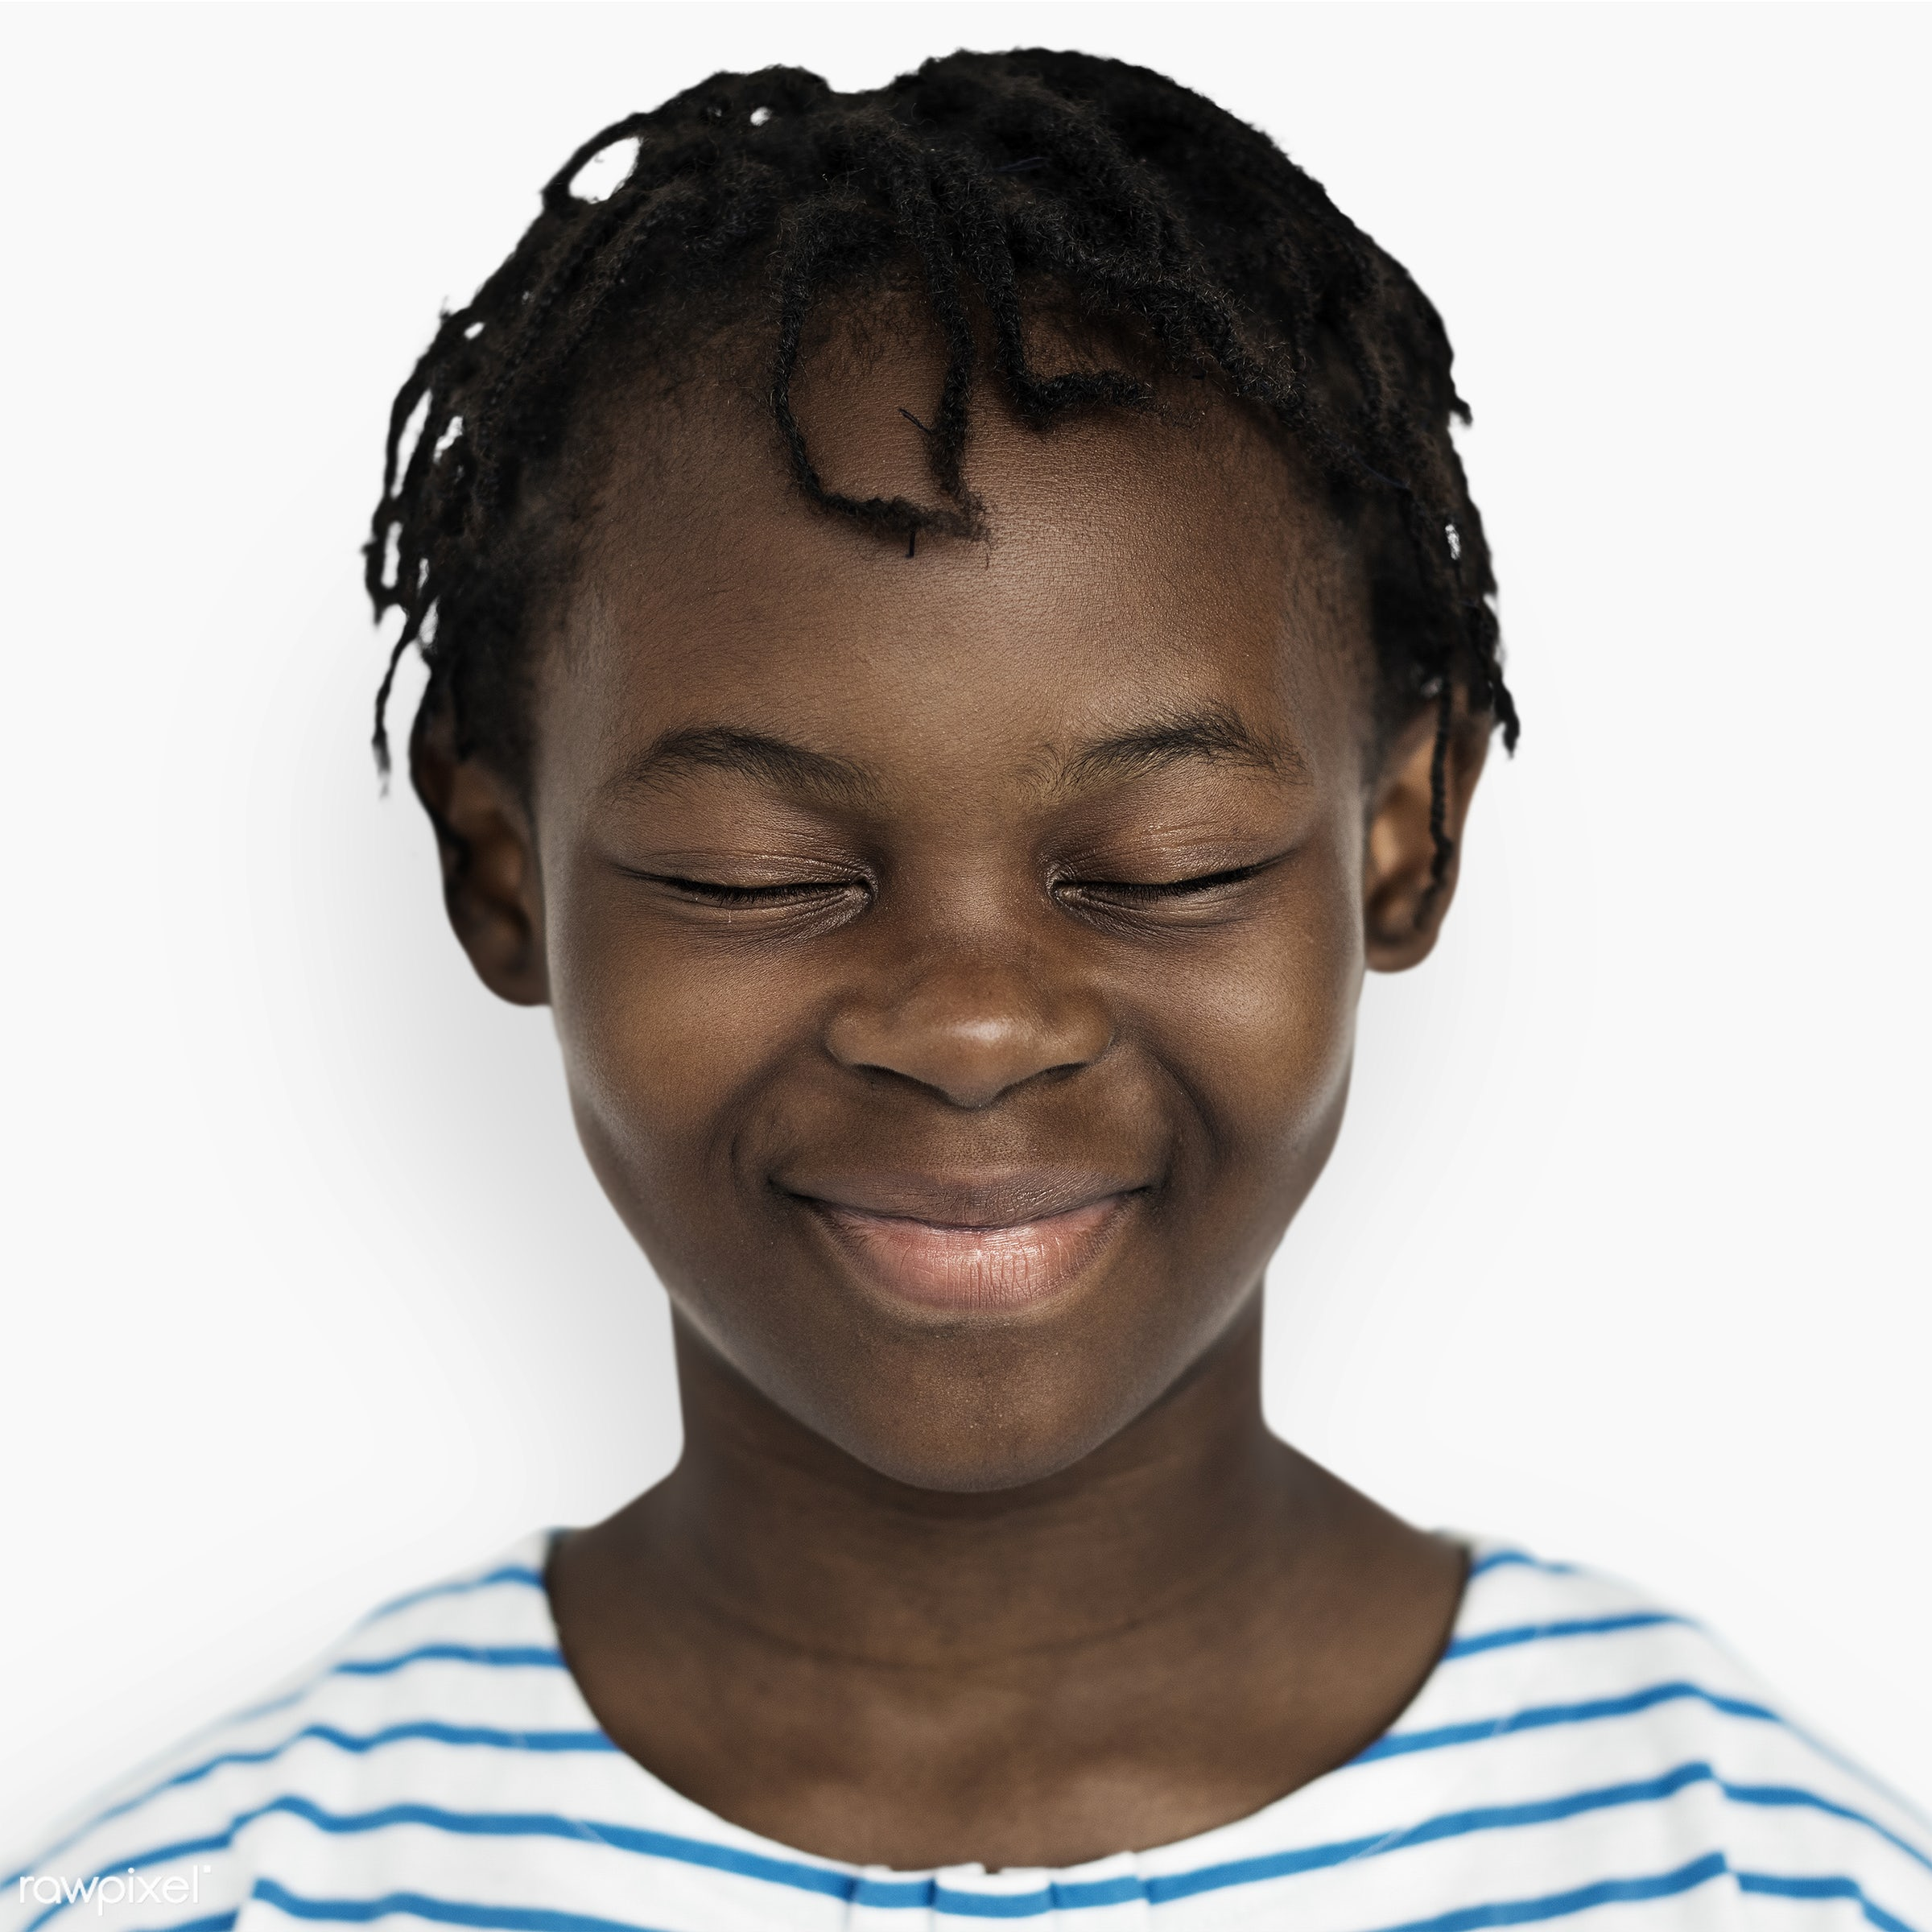 Portrait of a Congolese kid - face, african, alone, casual, cheerful, child, closed eyes, congolese, elementary, expression...